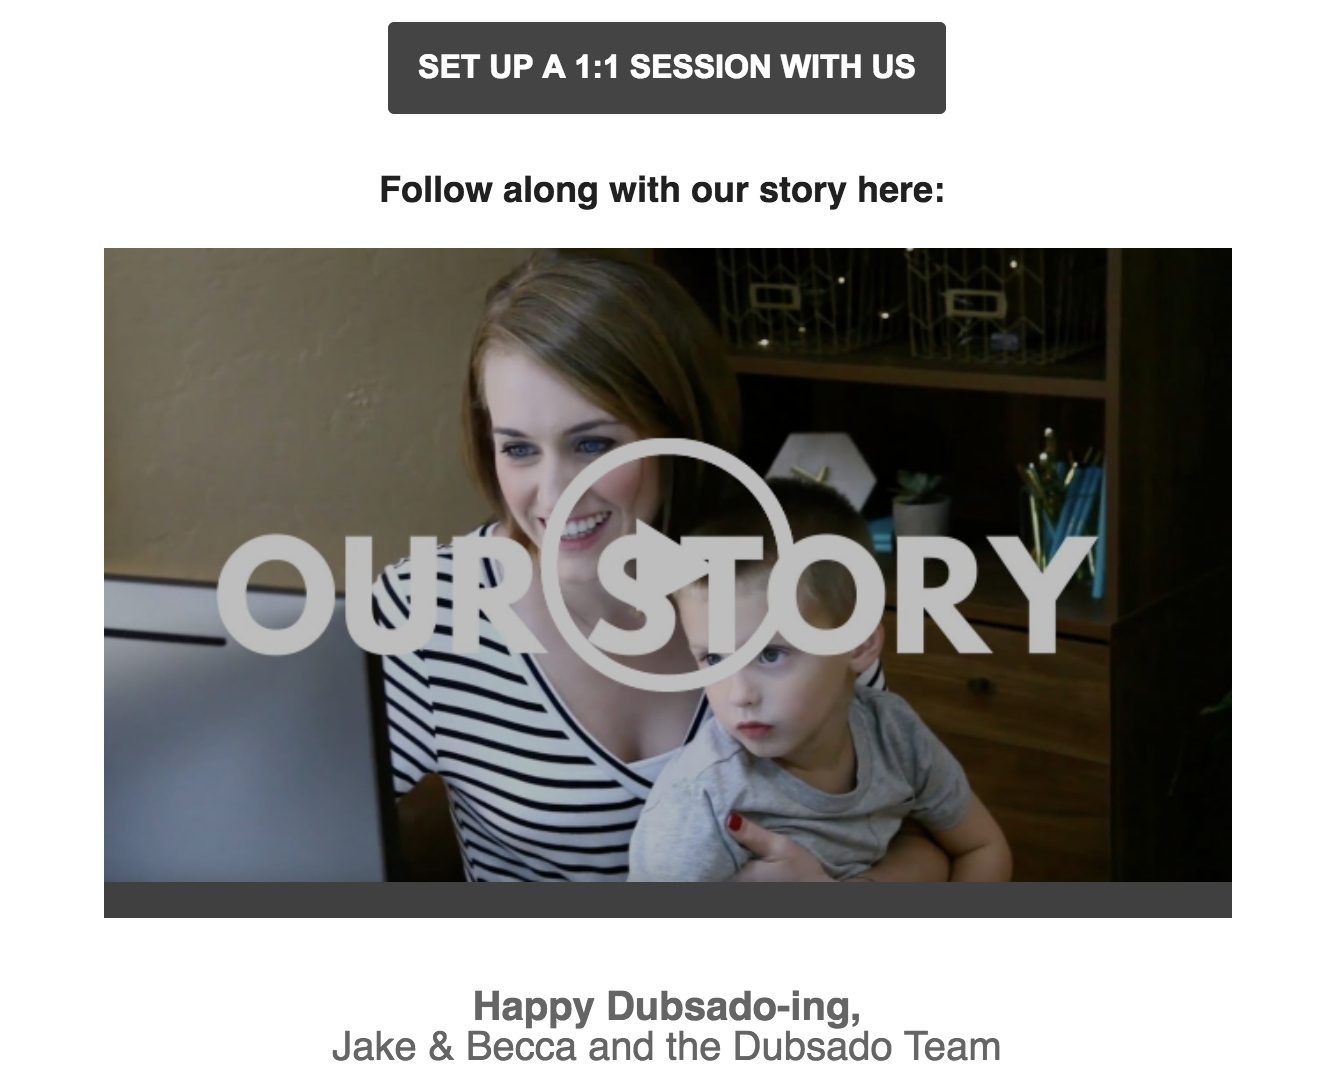 This is an email about a company's story with a video showing a woman holding a child in front of a laptop. It adds a human element to a welcome email and introduces faces of the team